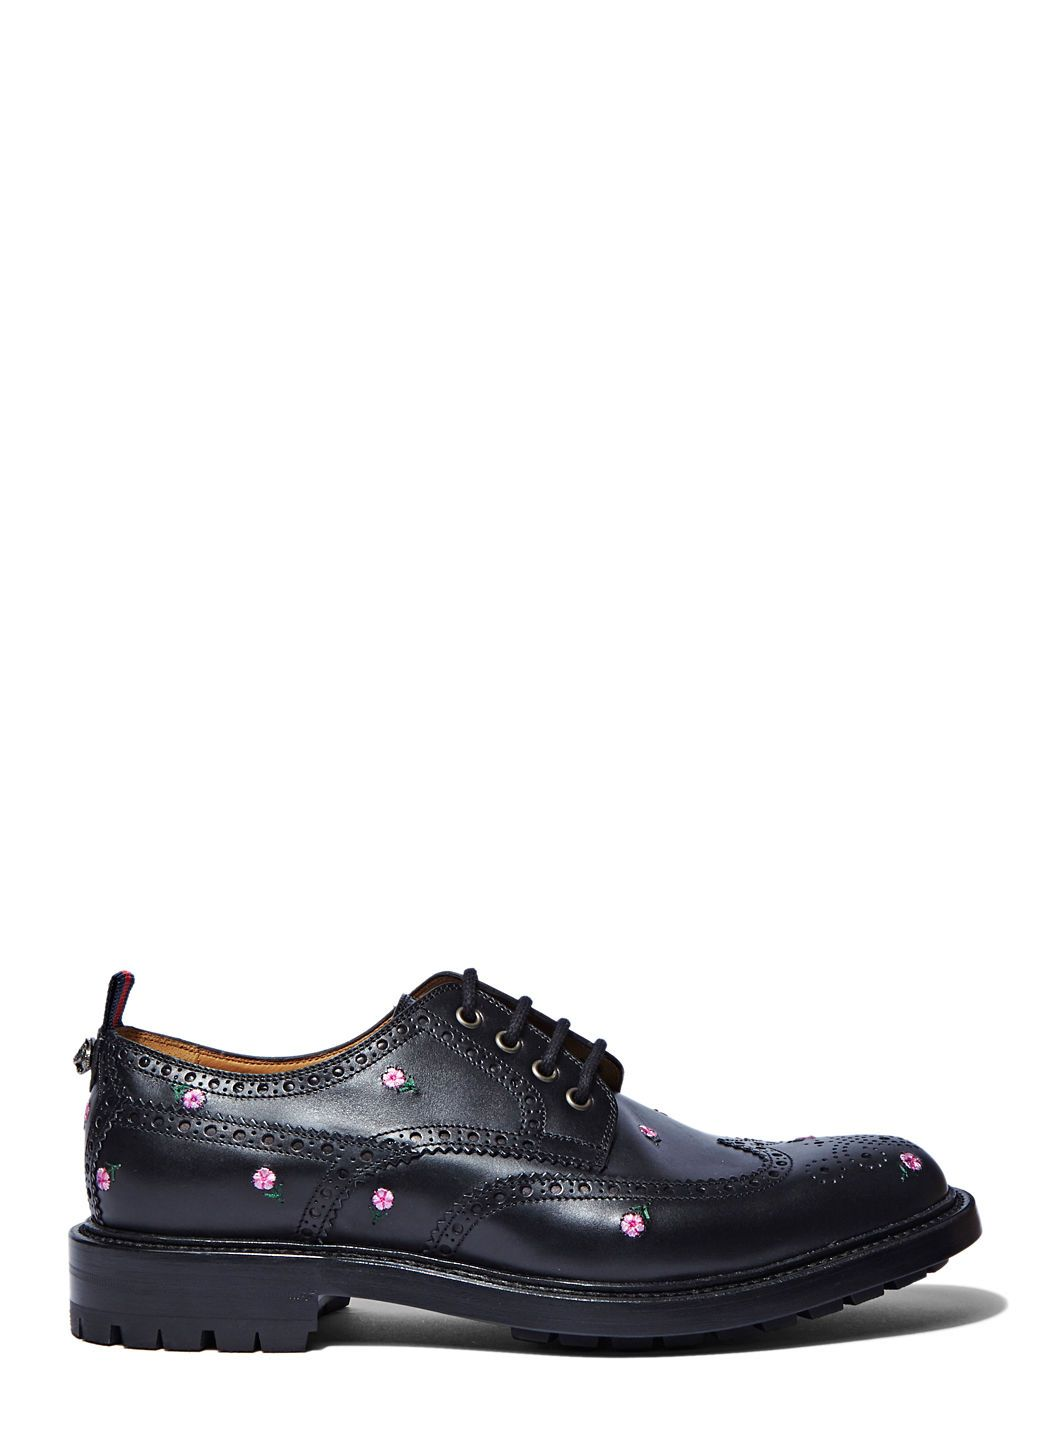 floral embroidered brogues Gucci TpSIkFwb